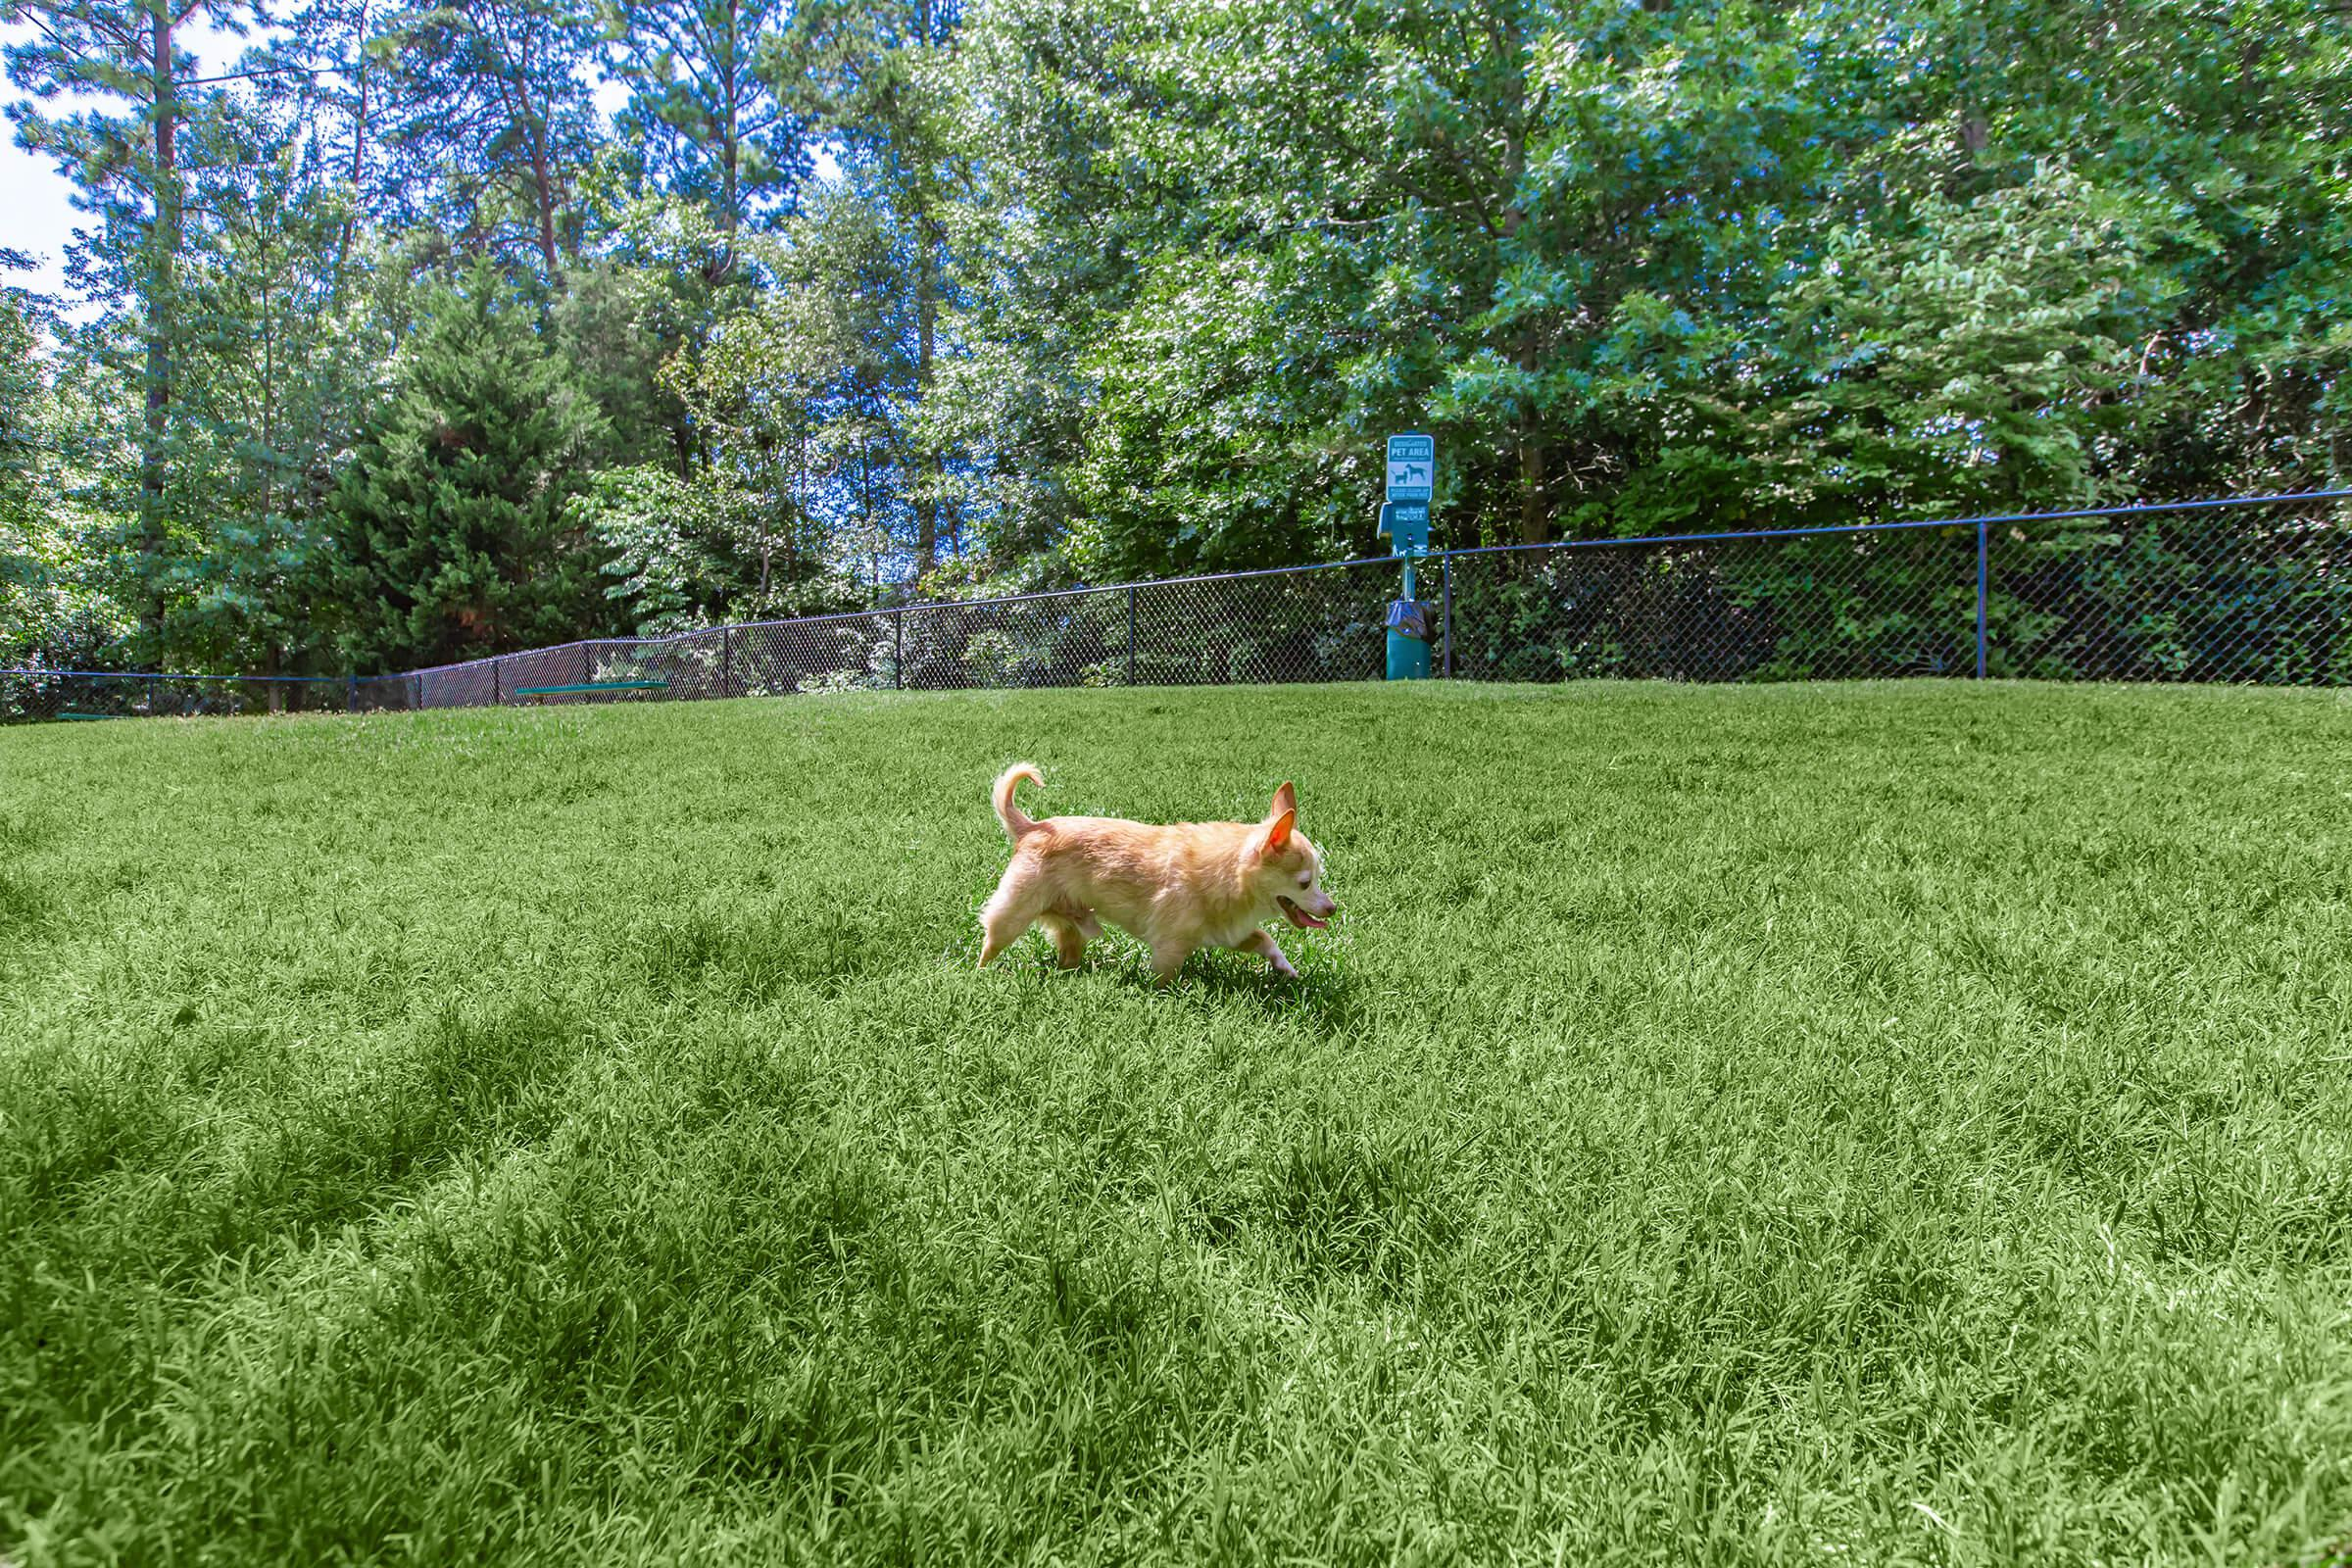 a dog standing on a lush green field